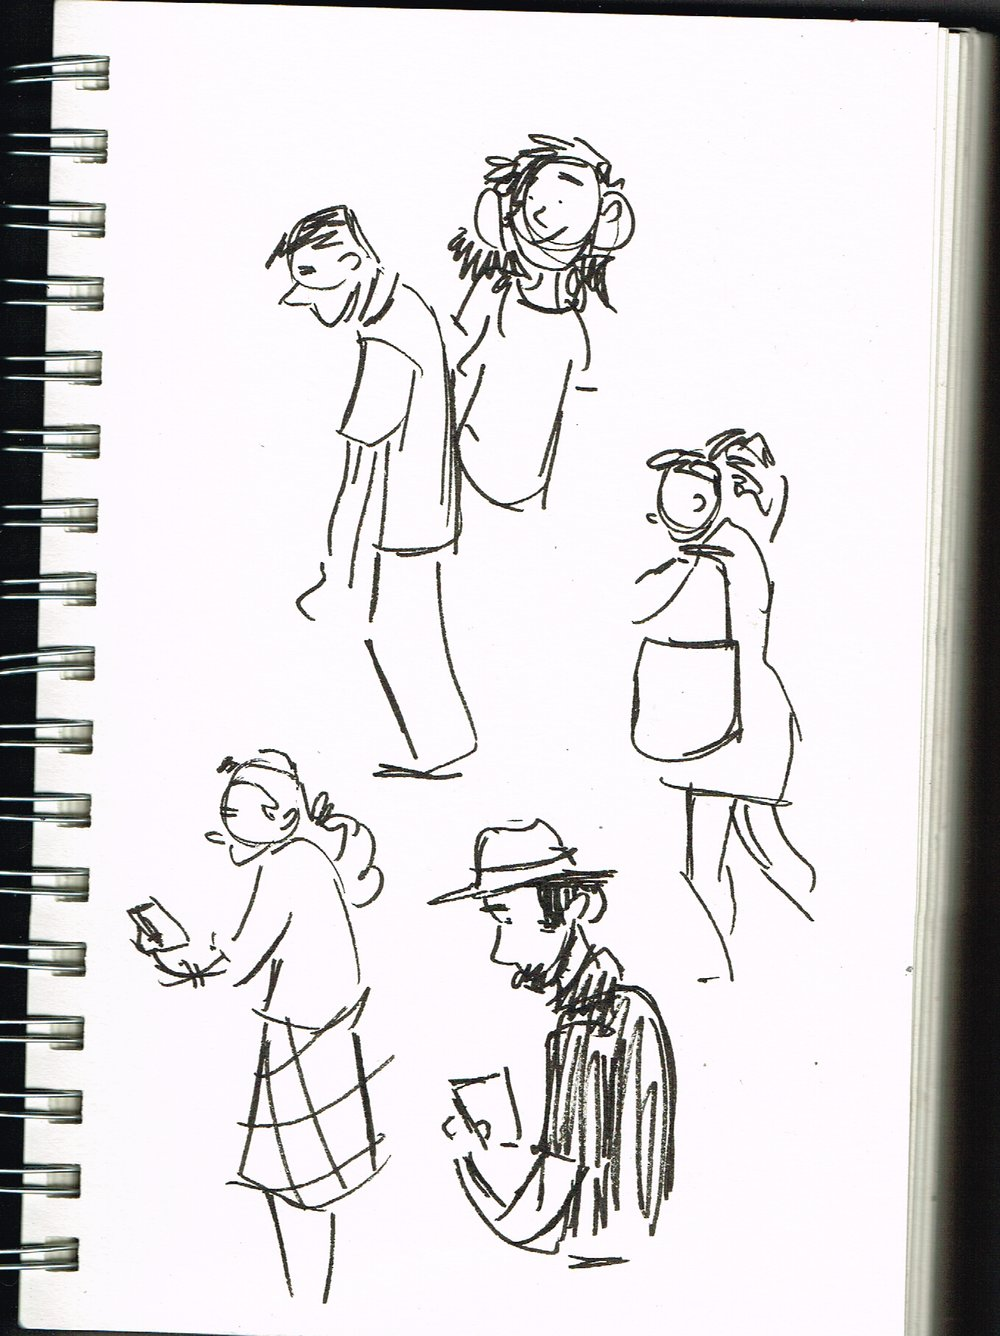 vacation_sketchbook_011.jpg